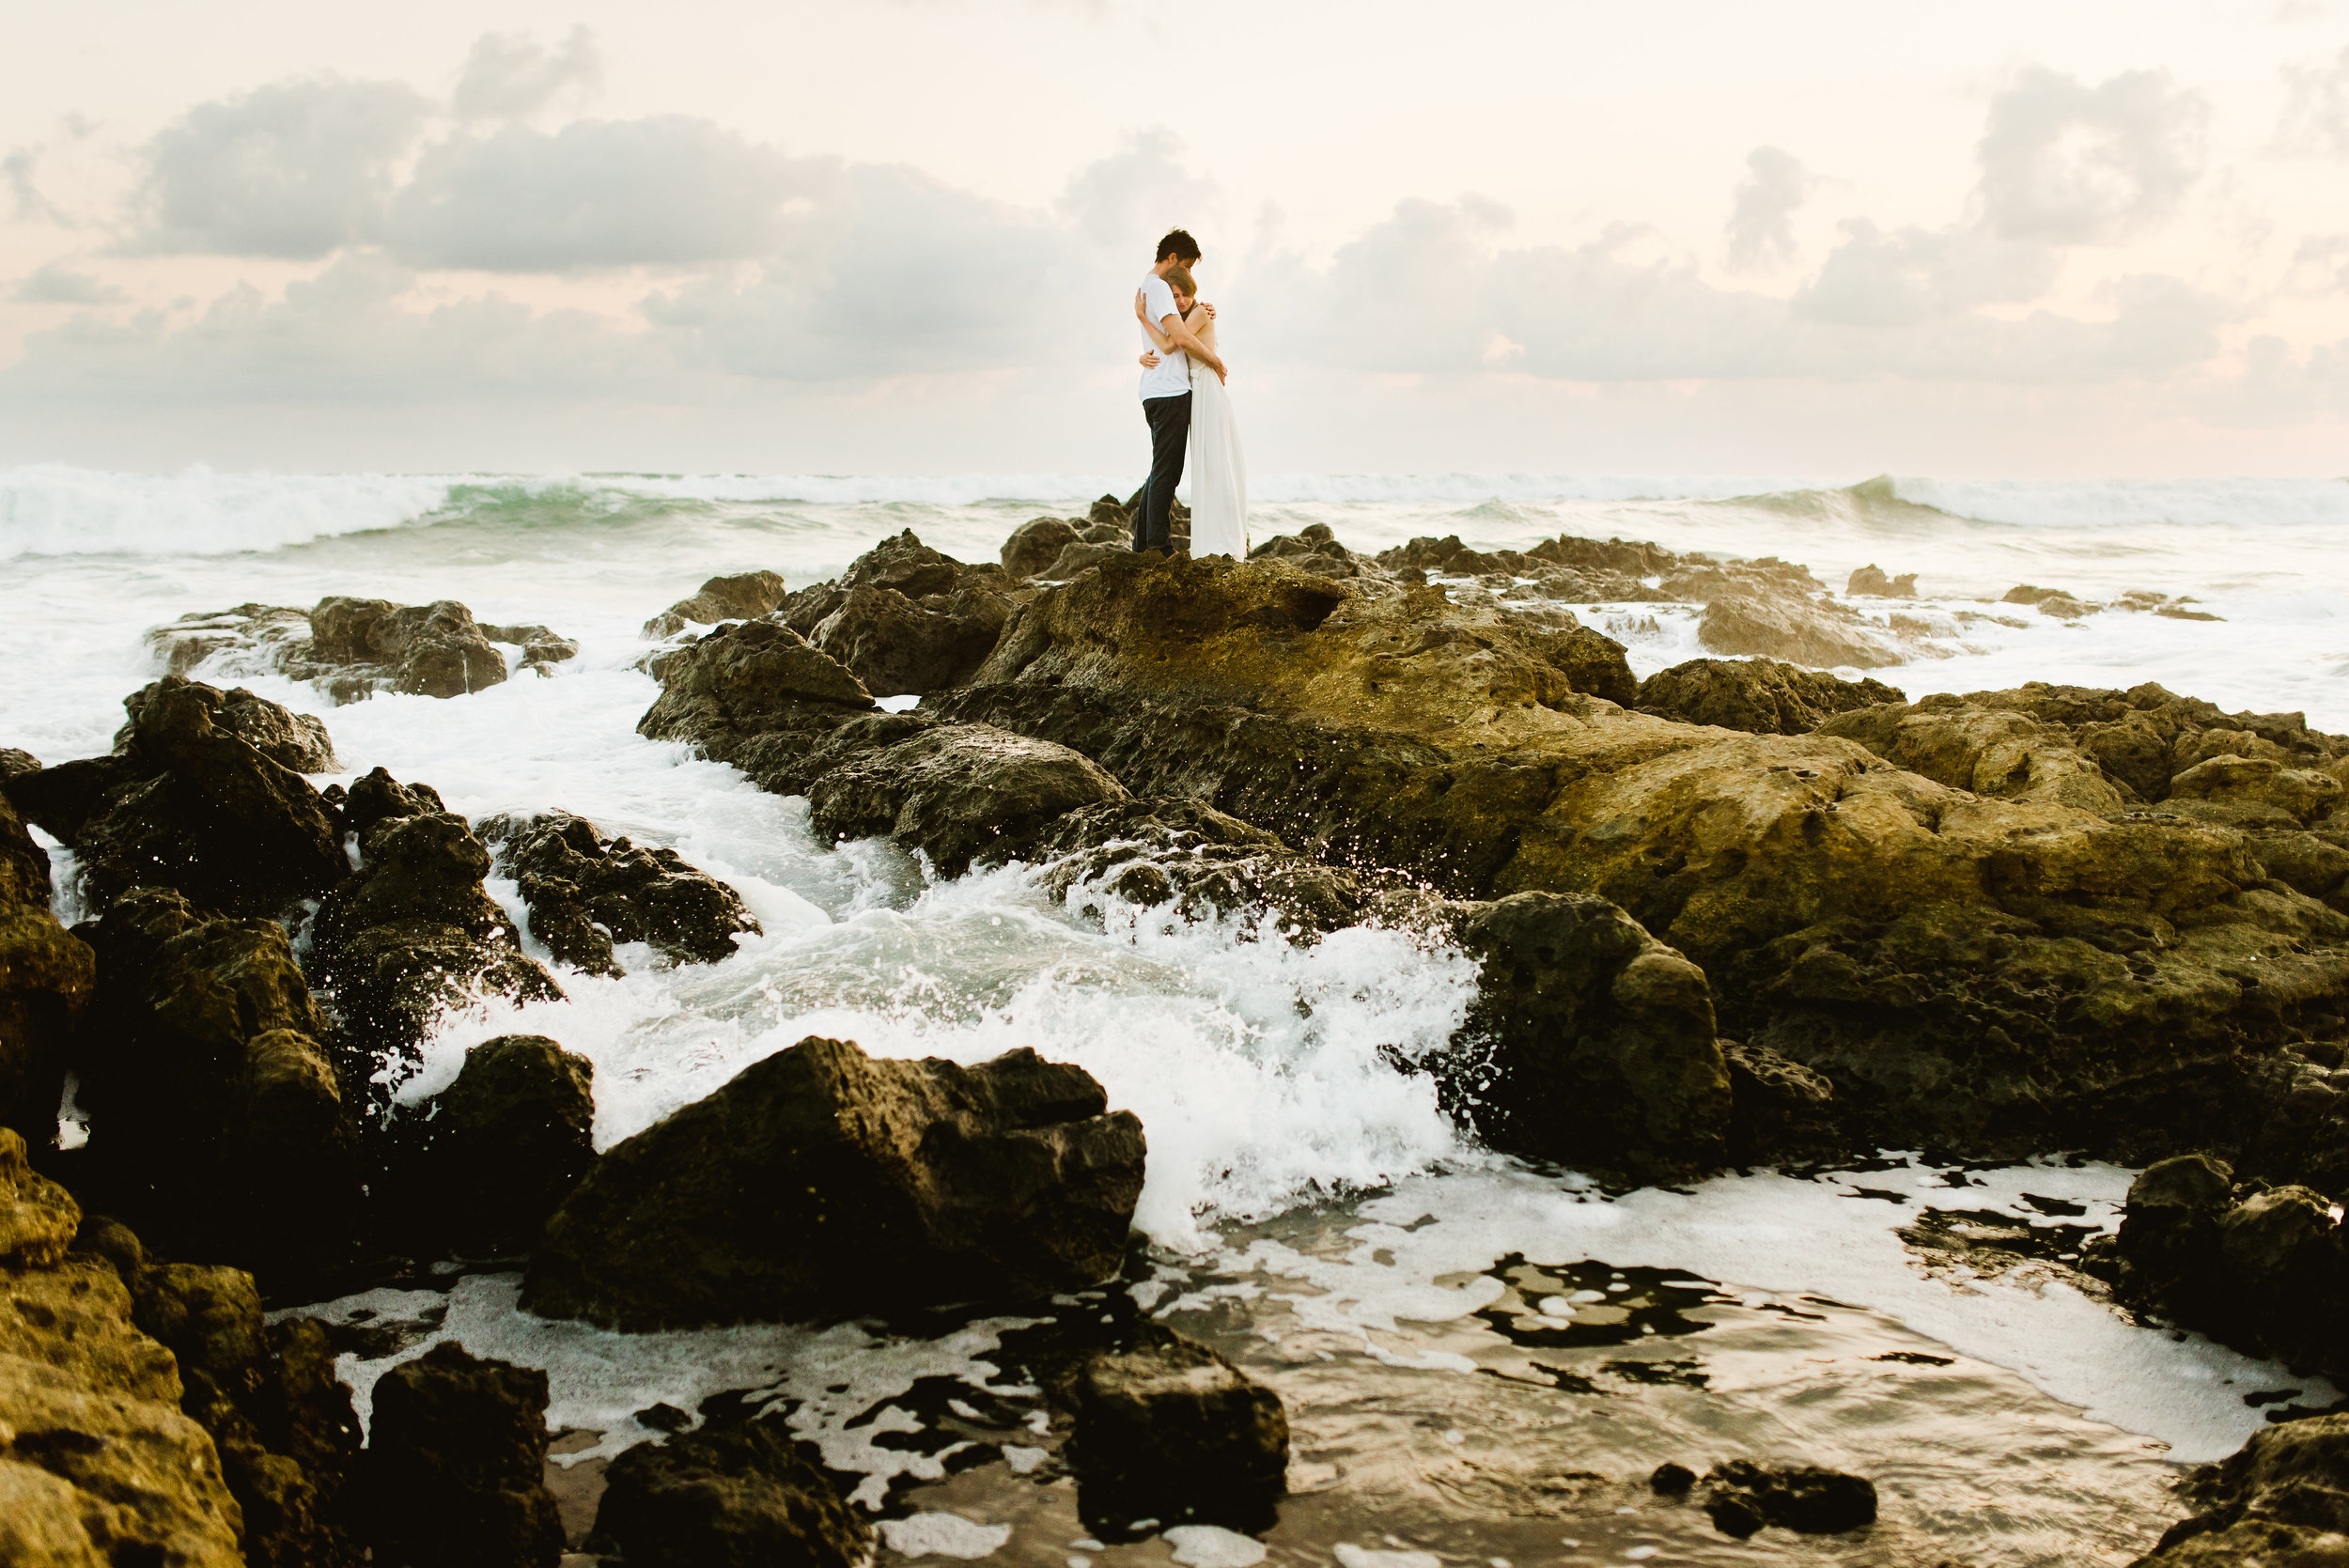 A rocky beach is so much more interesting than a sandy one for weddings and elopements... I love the way the water is splashing and spraying onto the rocks!  Costa Rica wedding photography by destination wedding photographer, Maddie Mae.